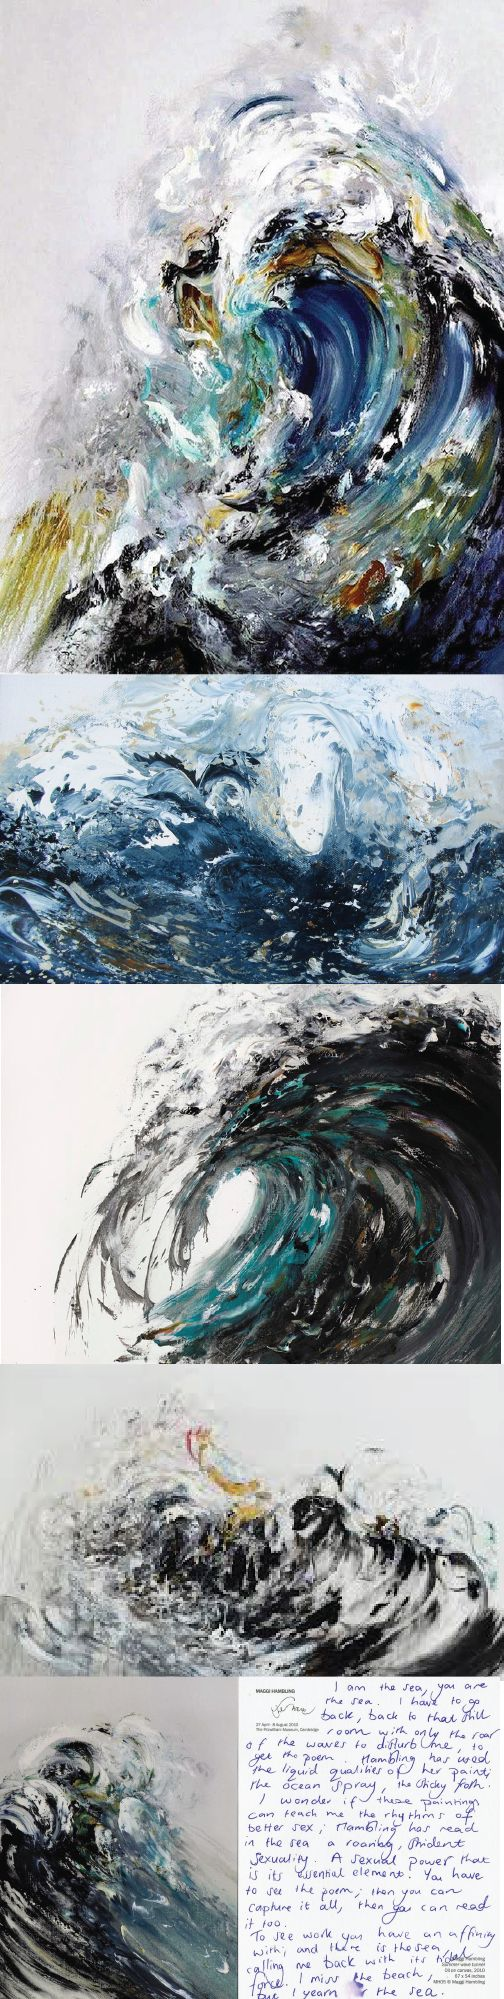 """I try to paint the sound of the sea"", Maggi Hambling. The World's 12 Most Important Female Painters on TheCultureTrip.com."